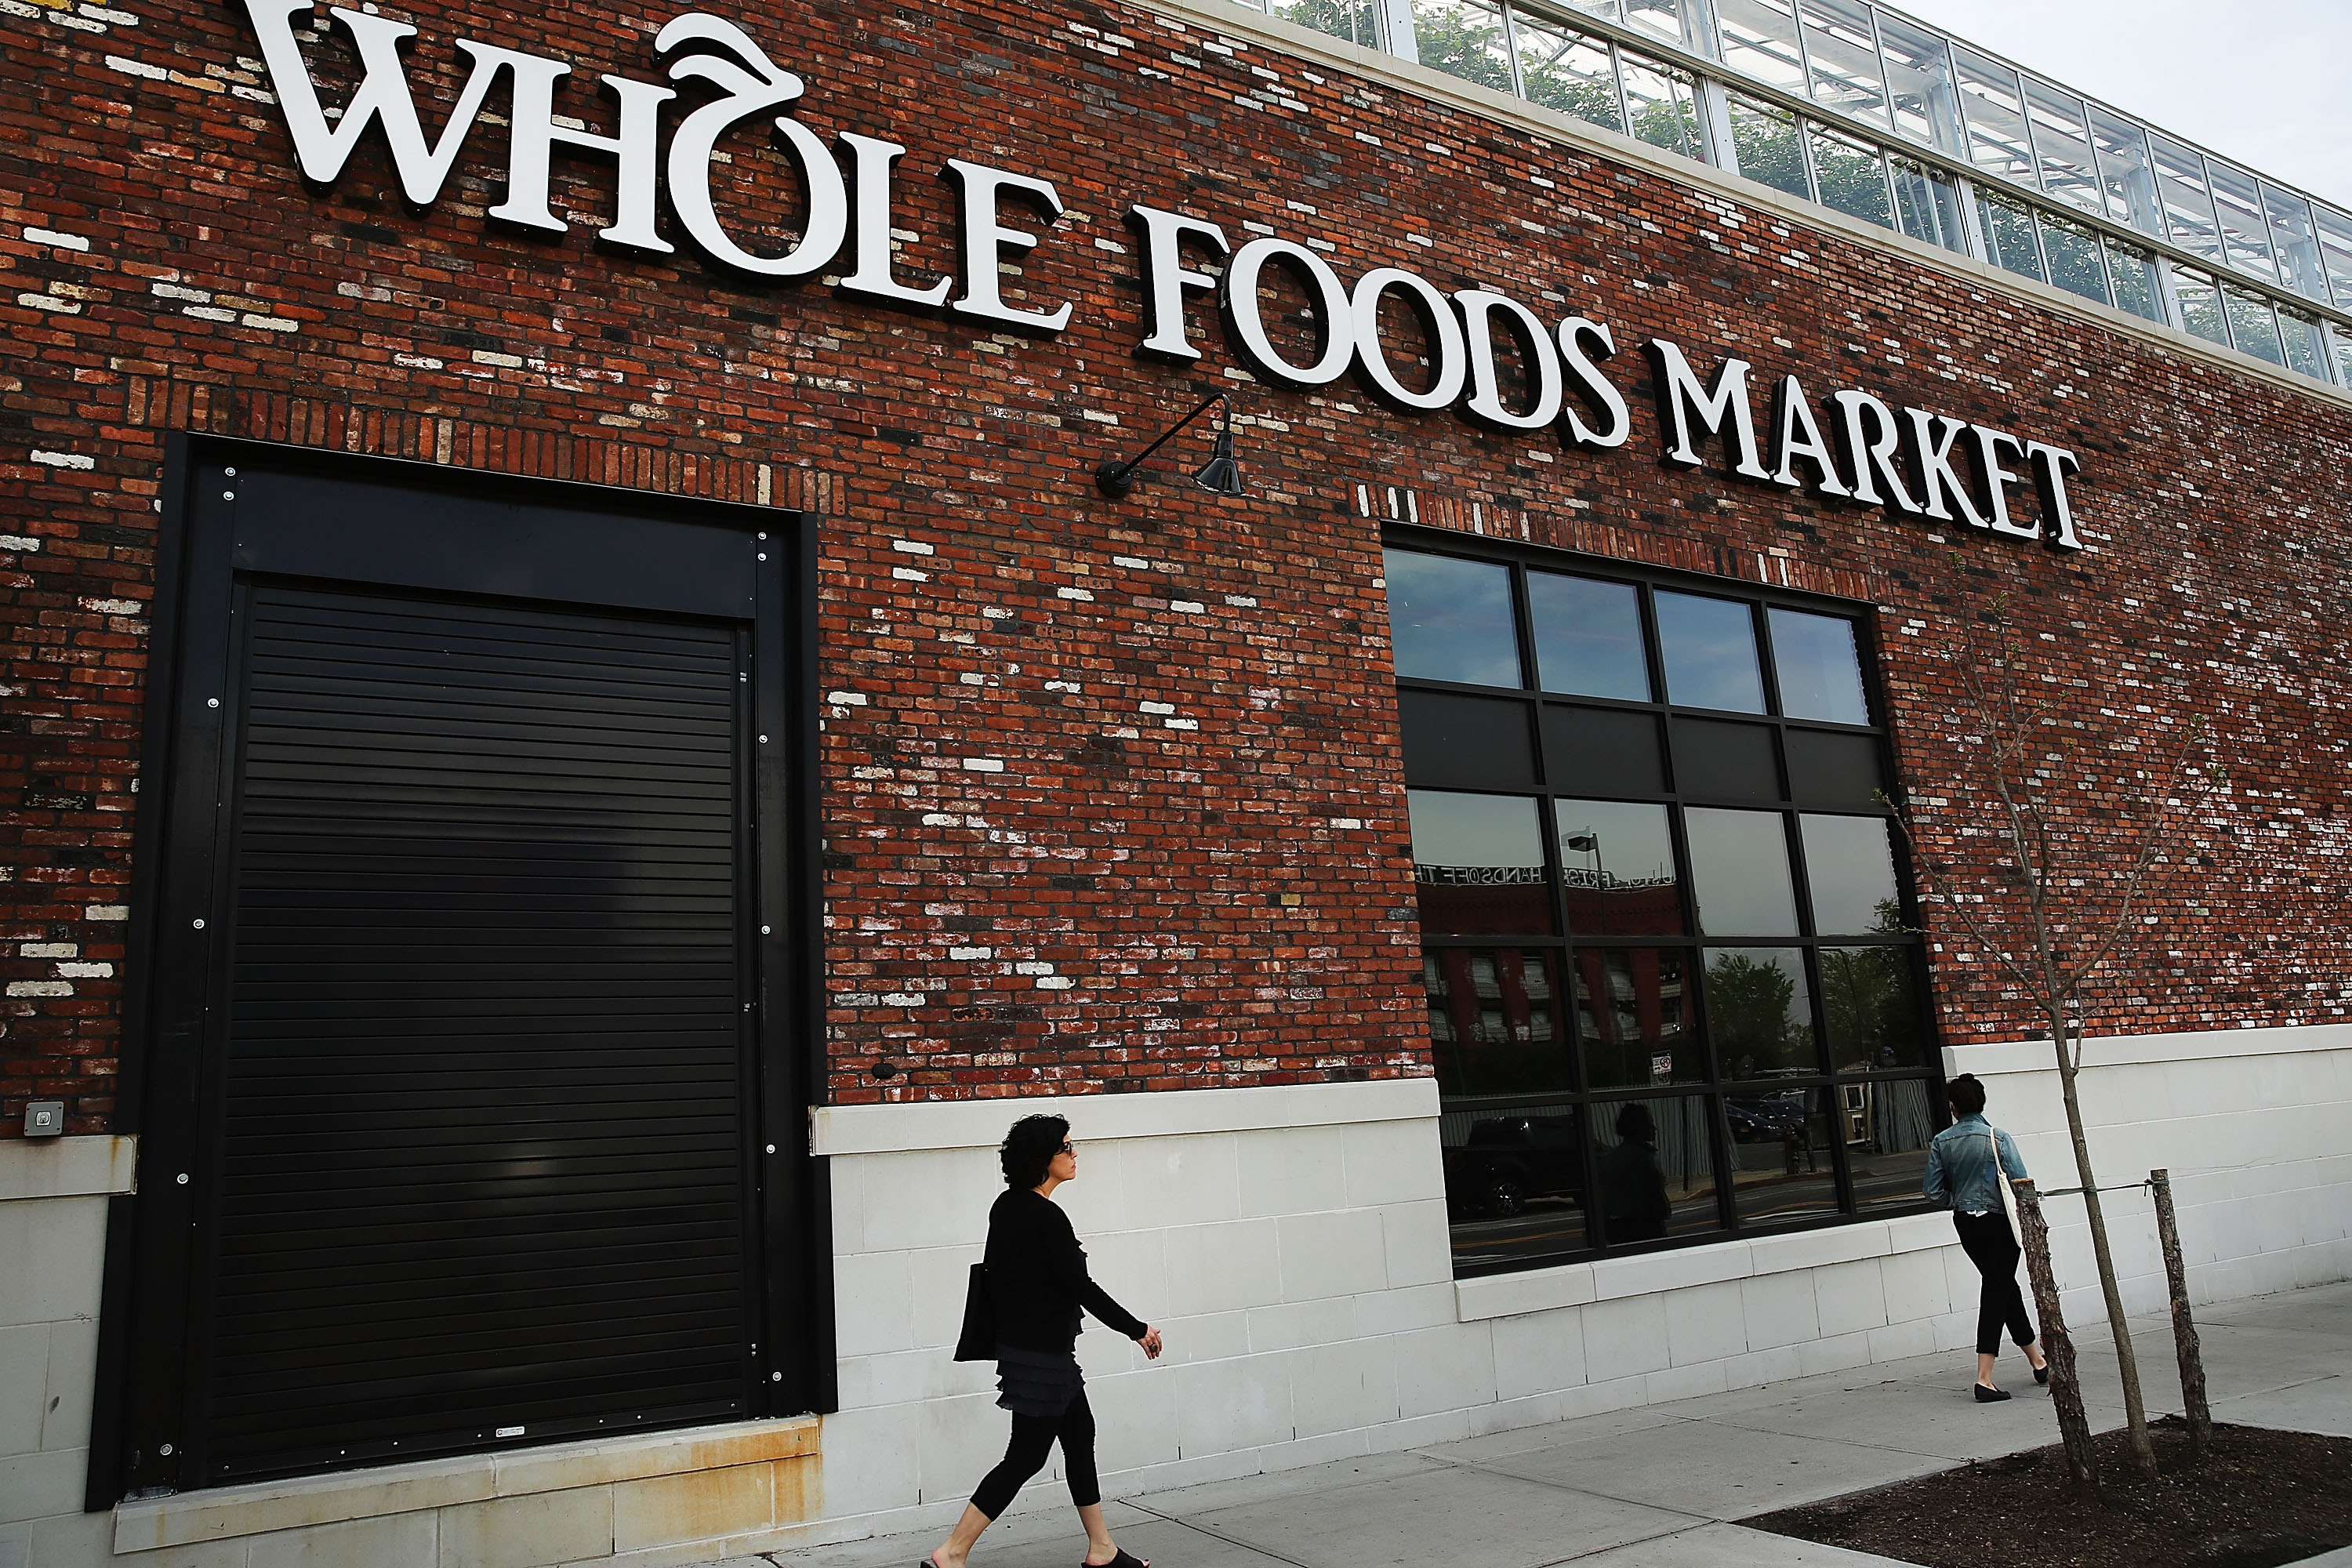 Baltimore Whole Foods Regrets Supporting National Guard on Instagram